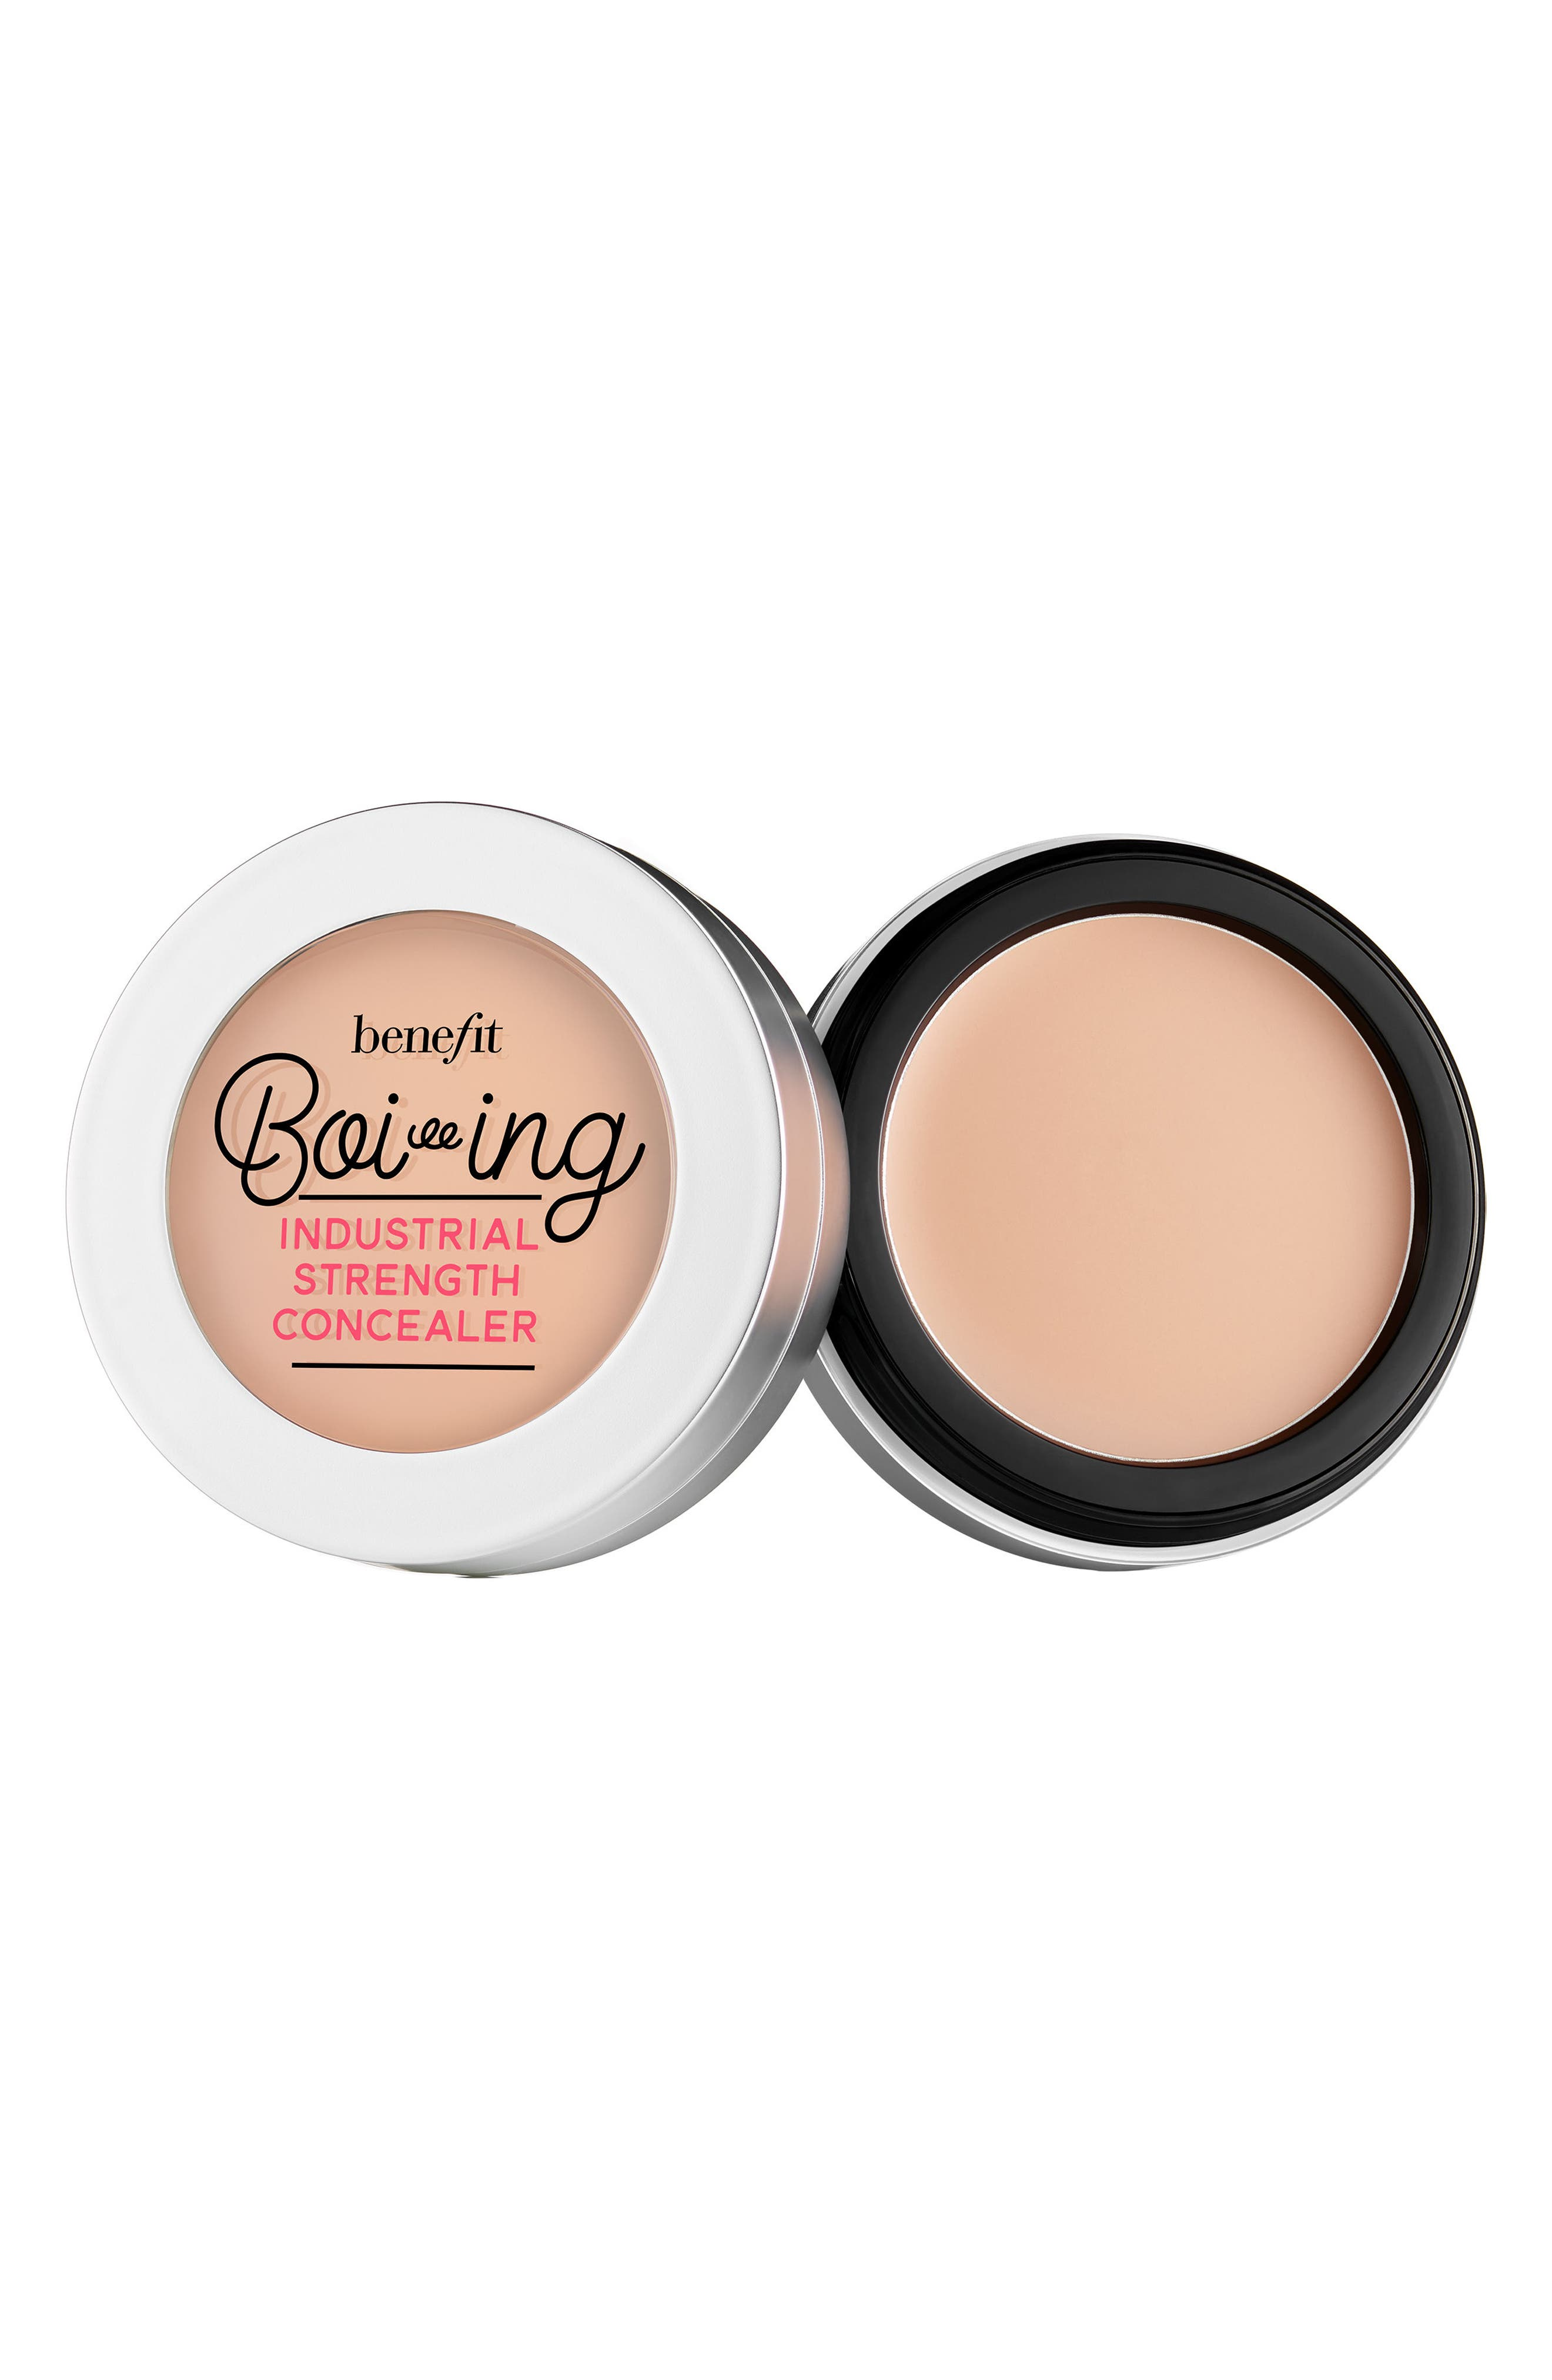 Benefit Boi-ing Industrial Strength Concealer,                             Main thumbnail 1, color,                             01 - LIGHT